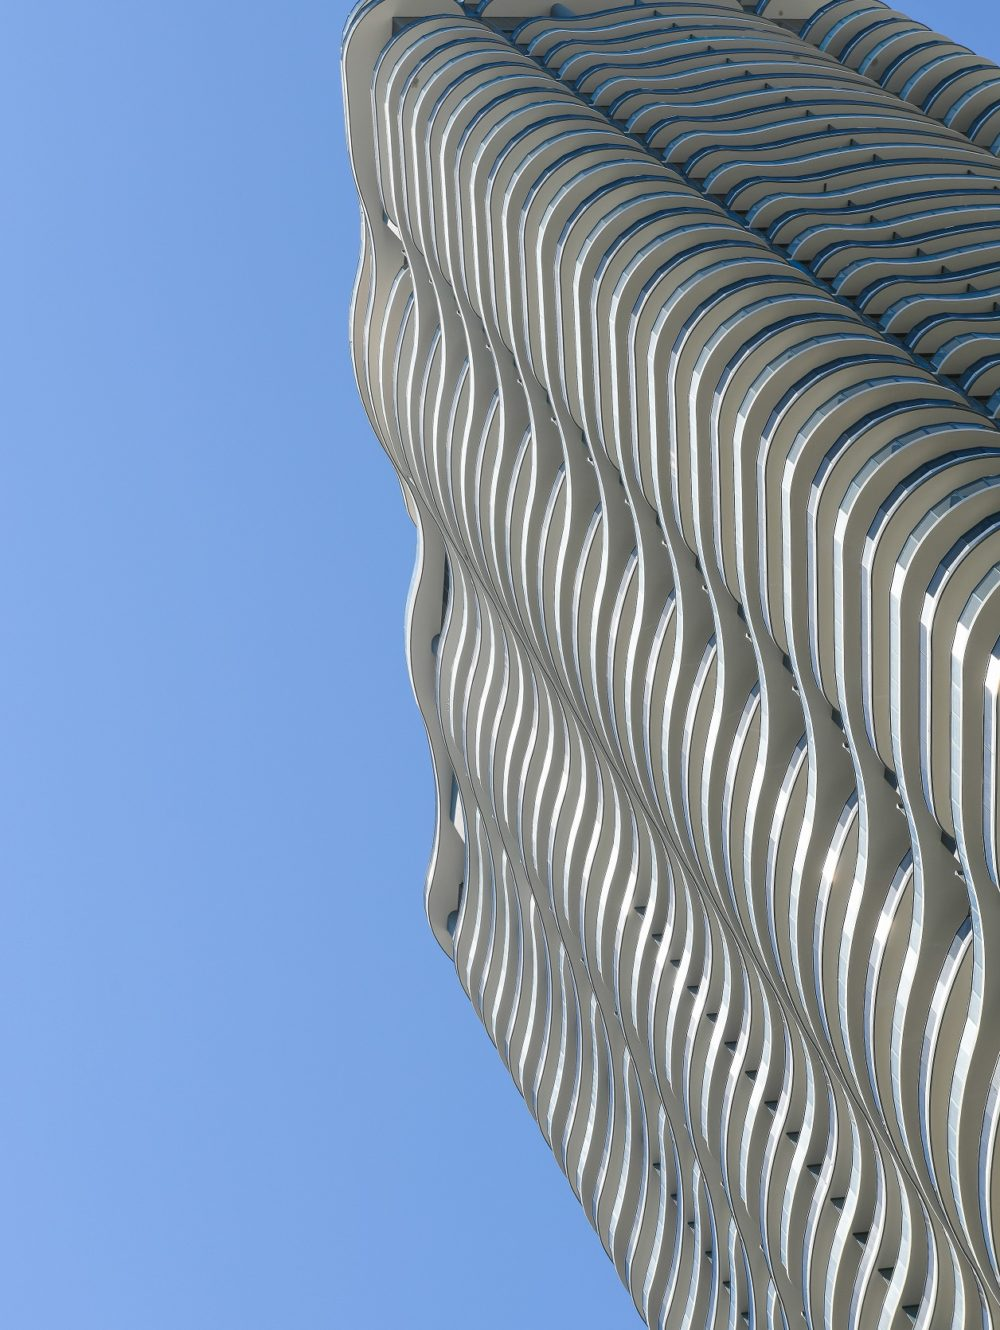 Exterior scale view of Brickell Flatiron condominiums detailed architecture. Has Biscayne Bay and downtown Miami views.